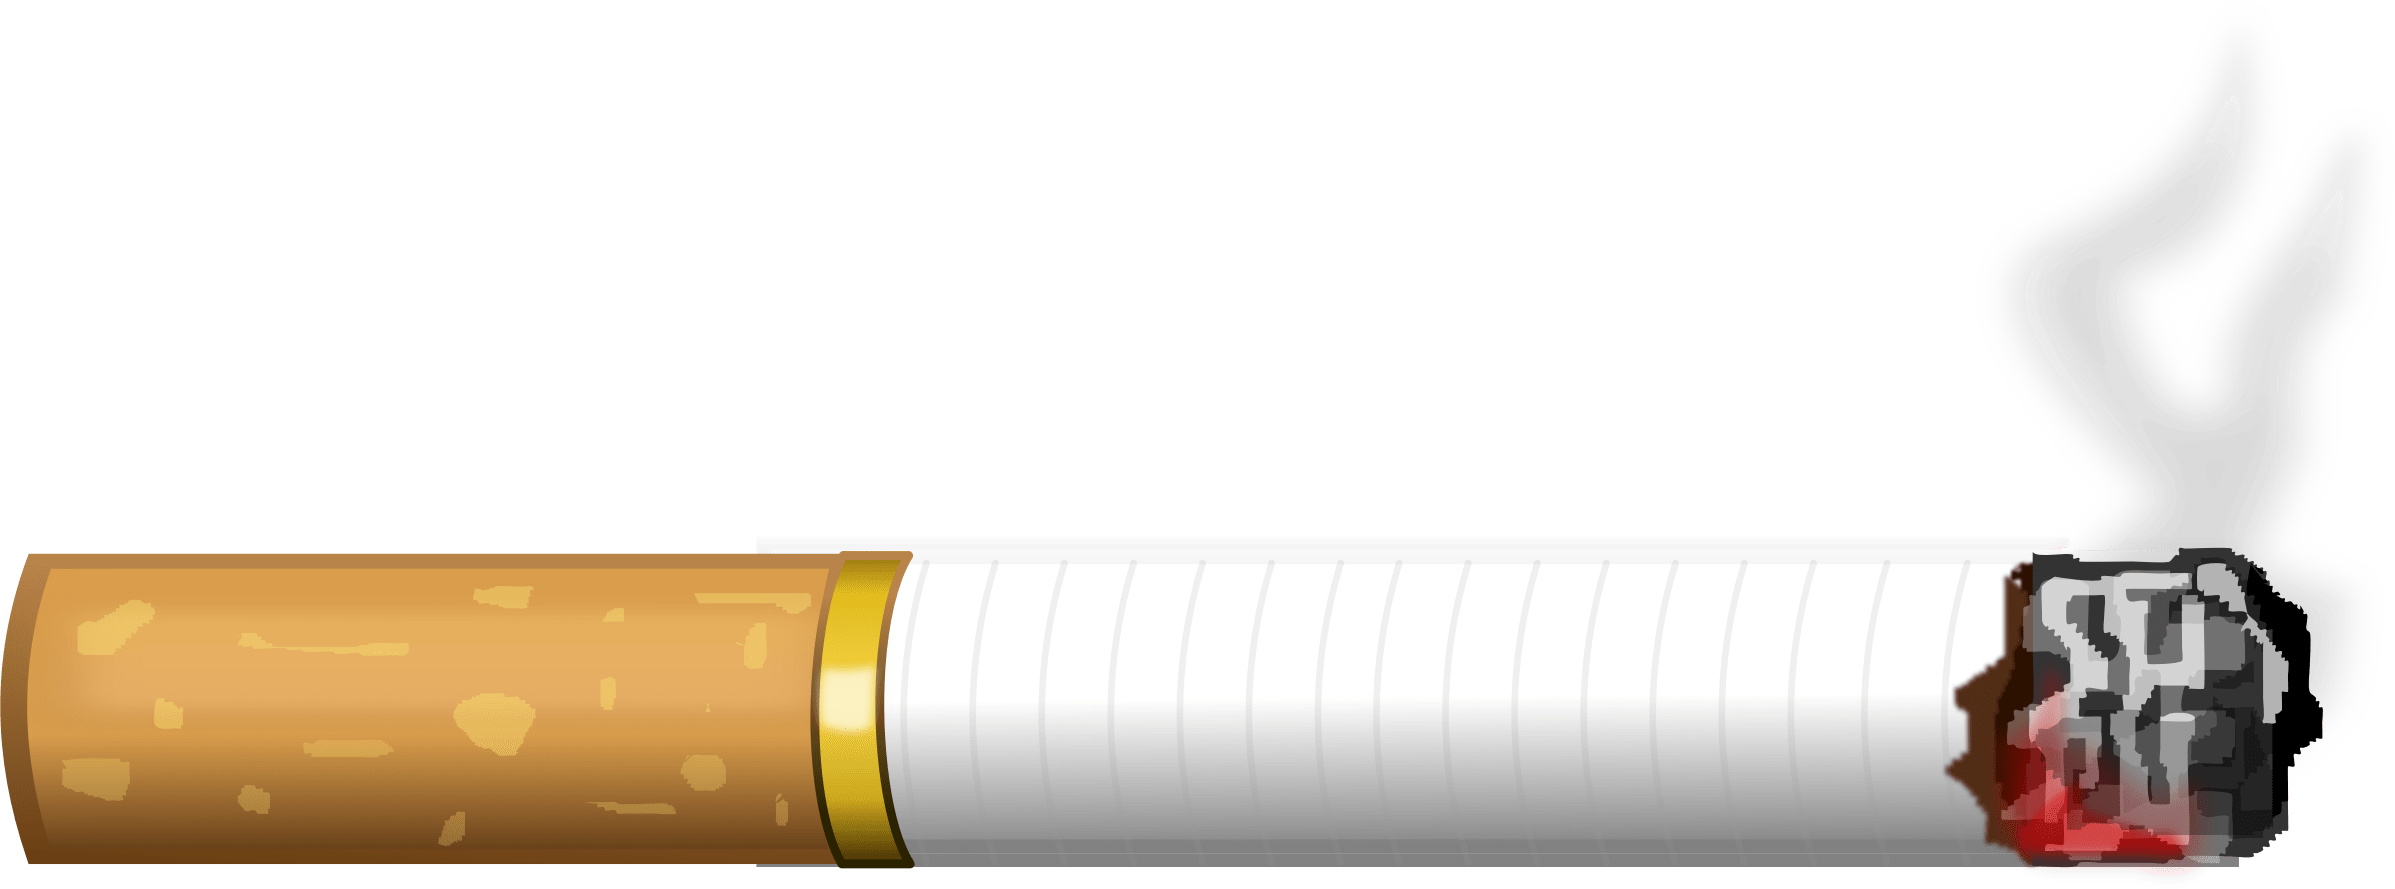 Thug Life Cigarette Smoking transparent PNG.